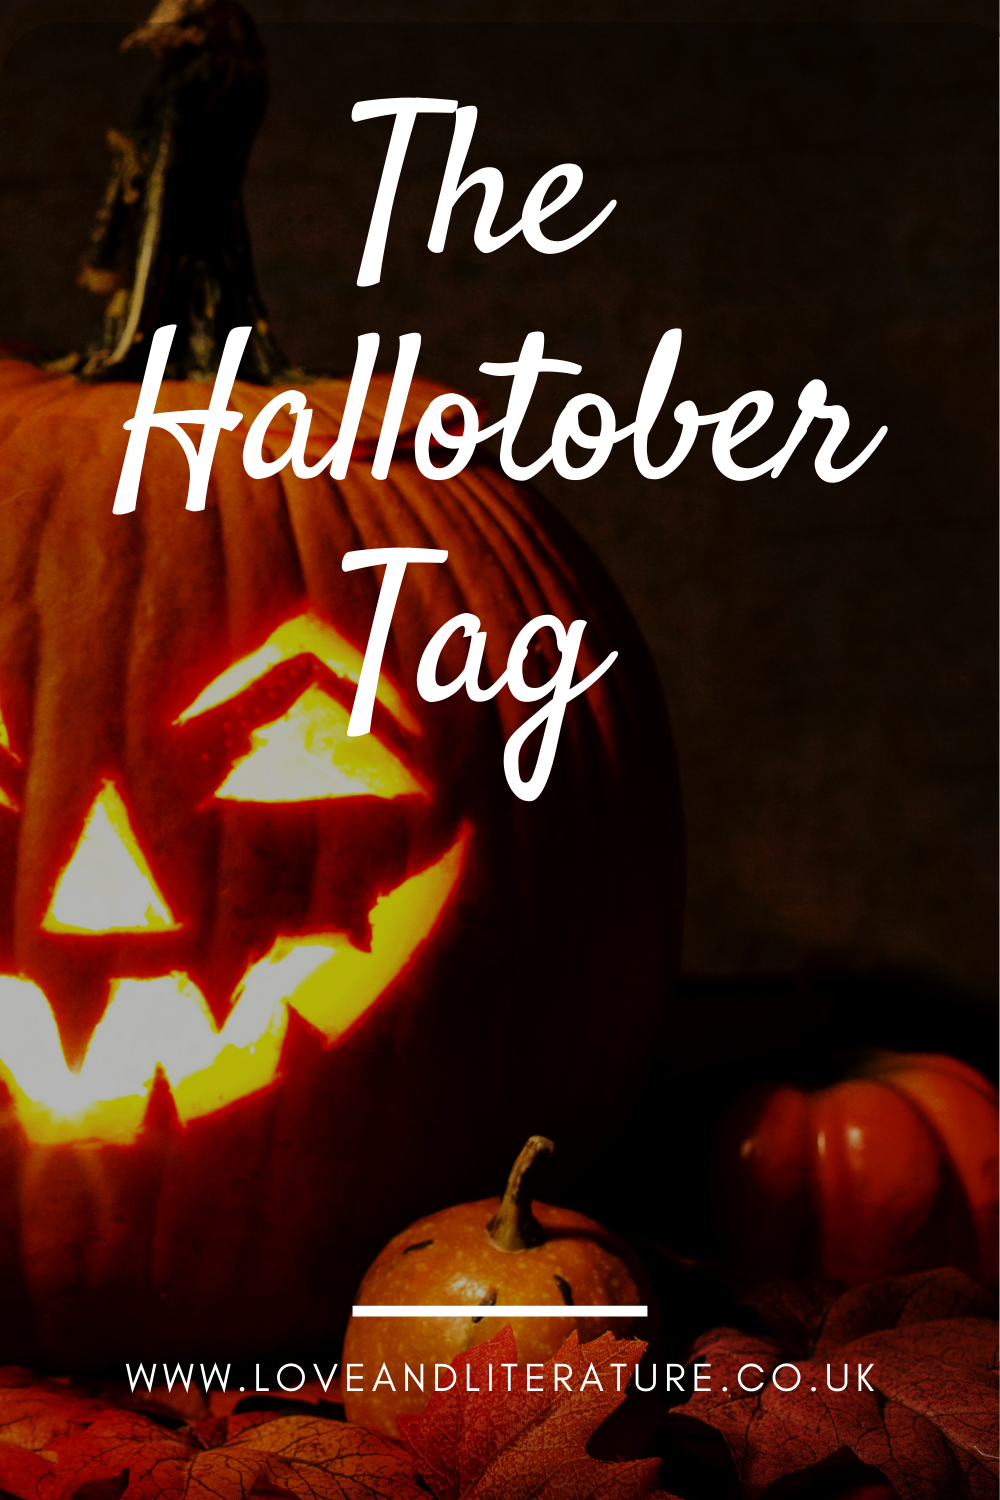 The Hallotober Tag Pin, Pumpkin on a dark background, text at front.